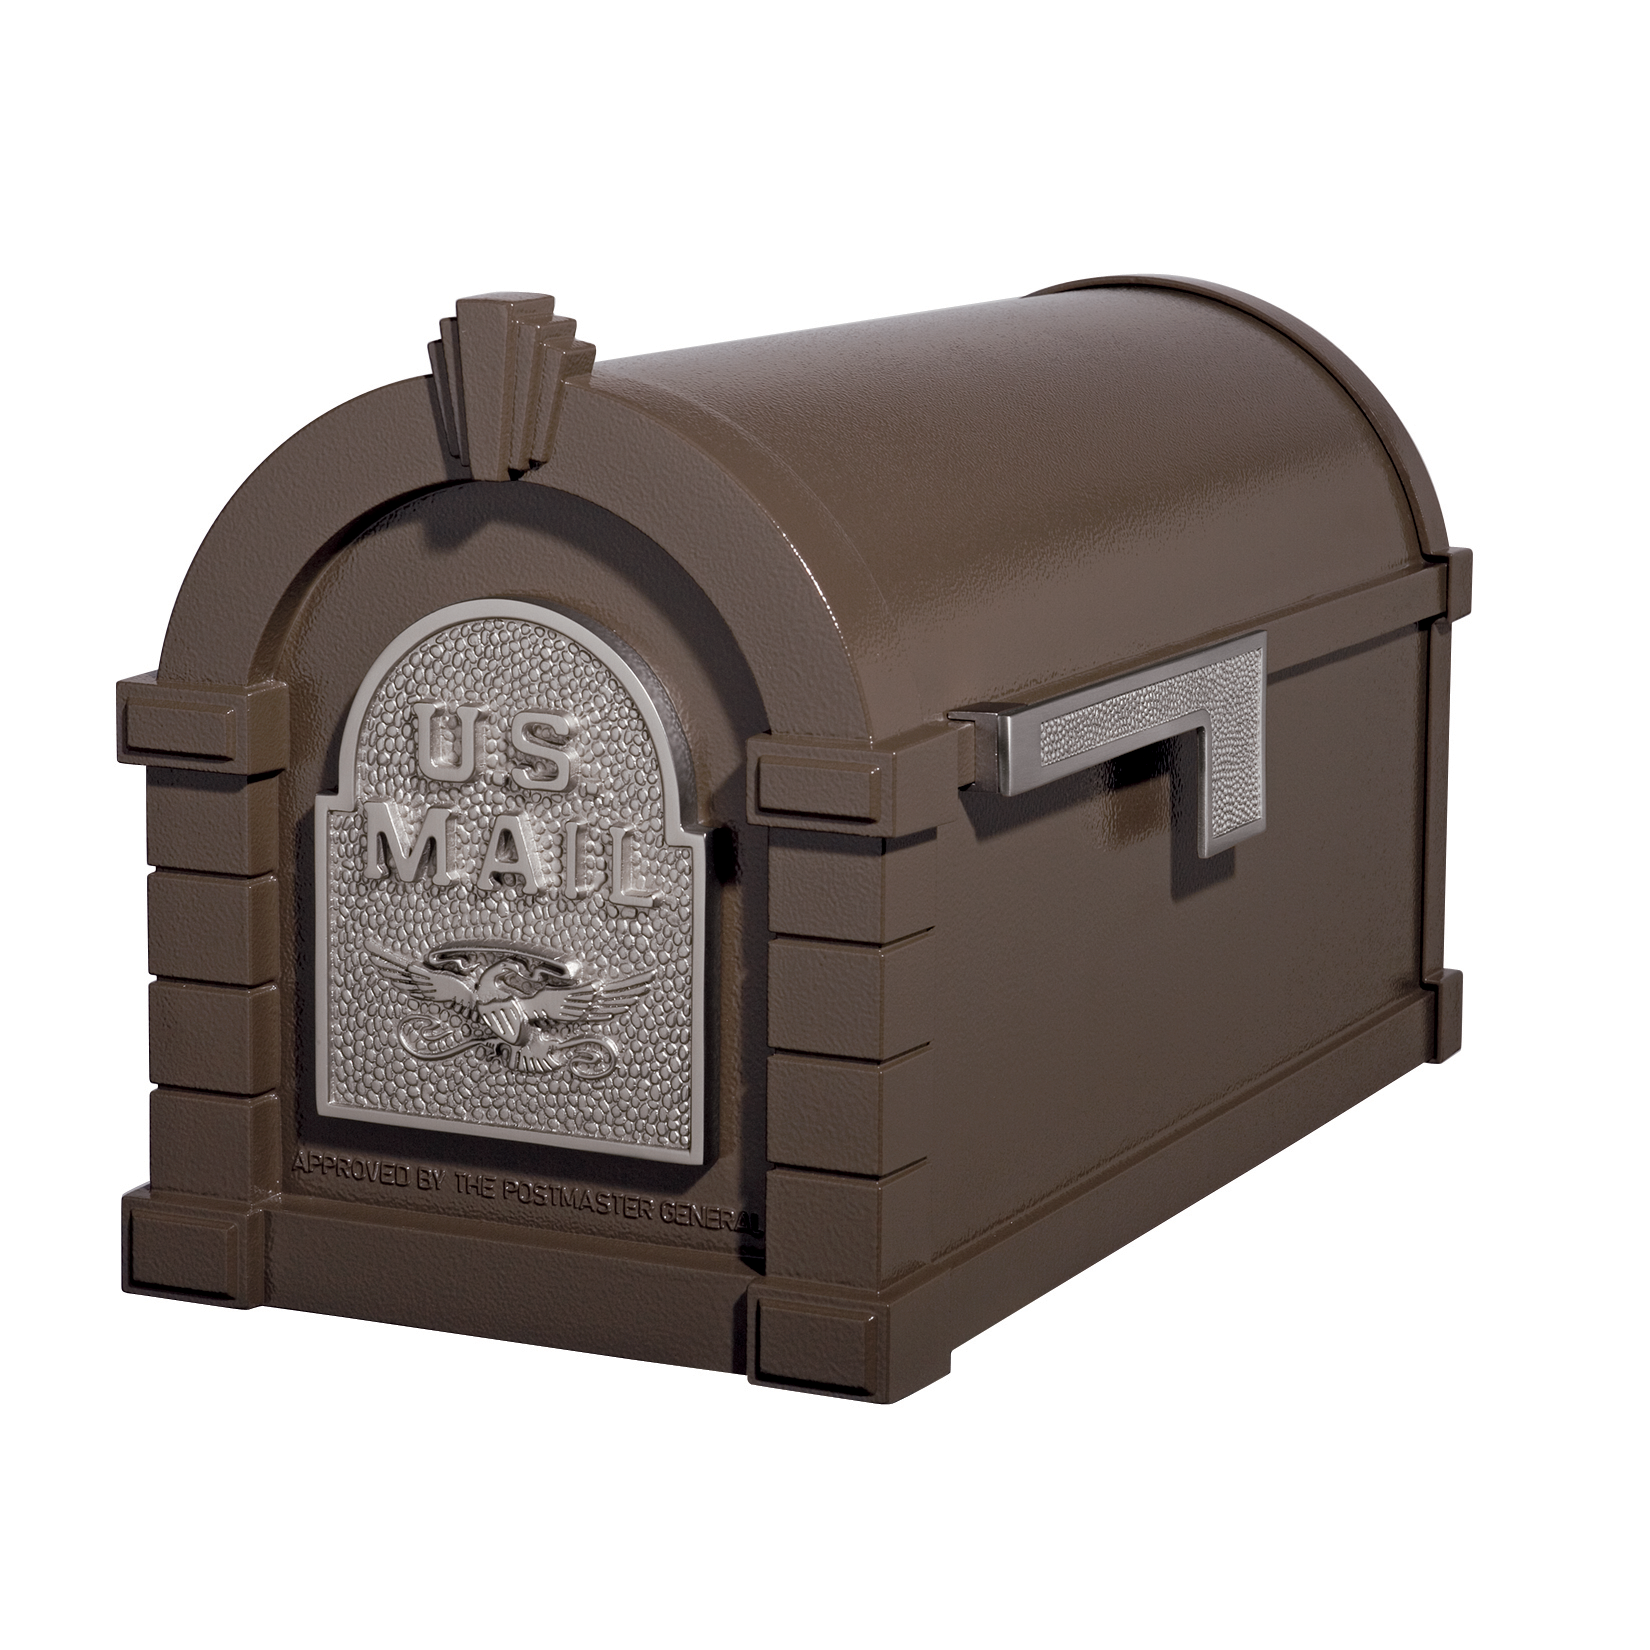 Gaines Eagle Keystone Mailboxes - Bronze with Satin Nickel